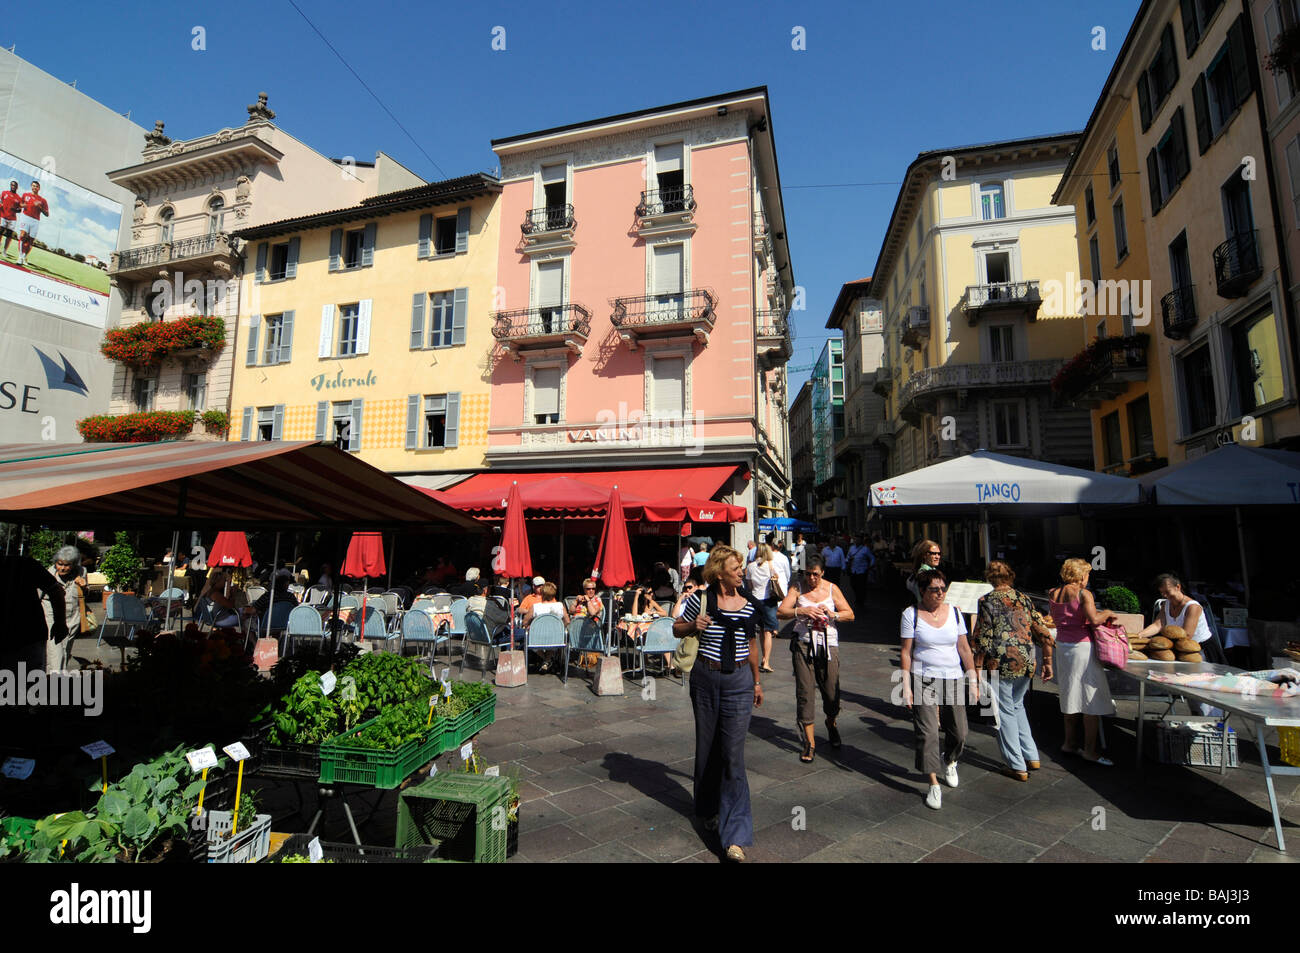 A traditional market in the centre of Lugano, Tessin canton, Switzerland Stock Photo